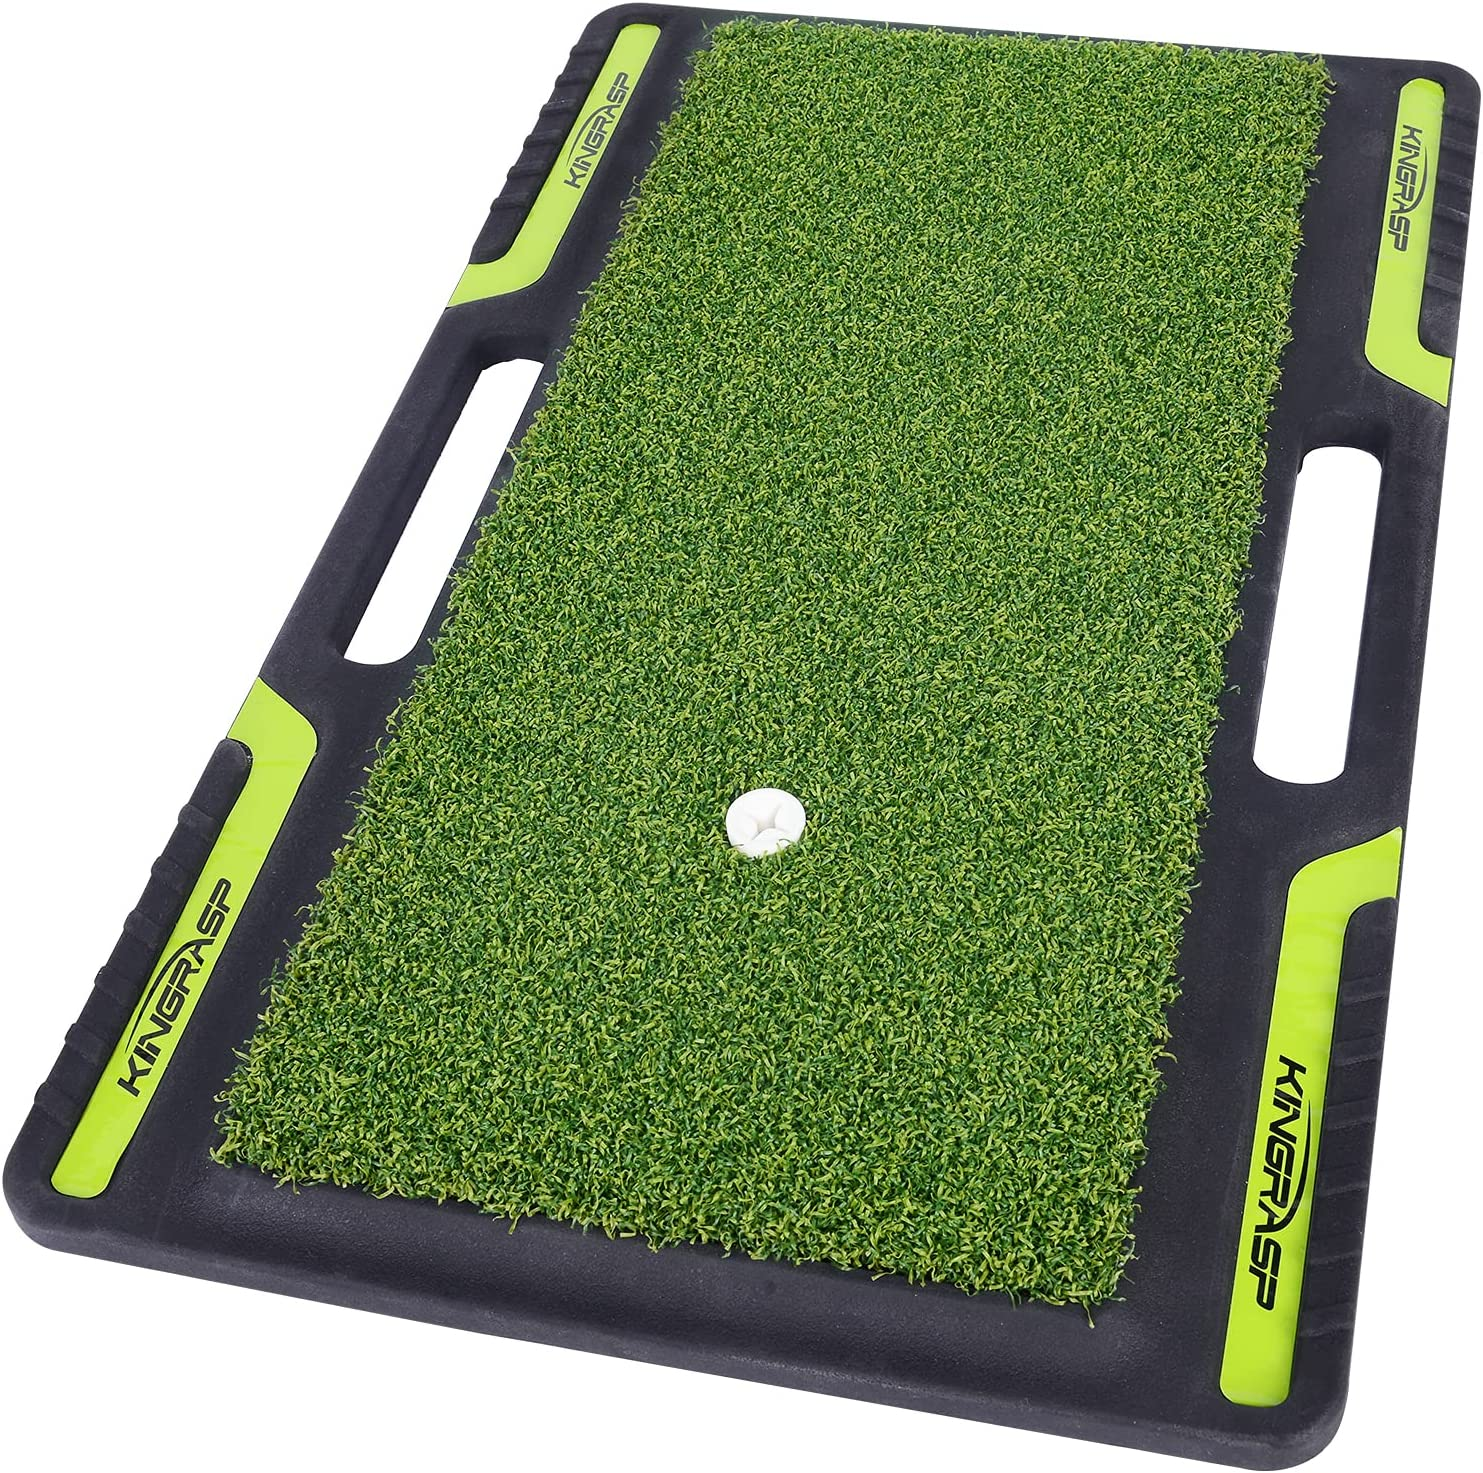 KINGRASP Bombing new work Golf Low price Hitting Mats - Artificial Outd Indoor for Turf Mat